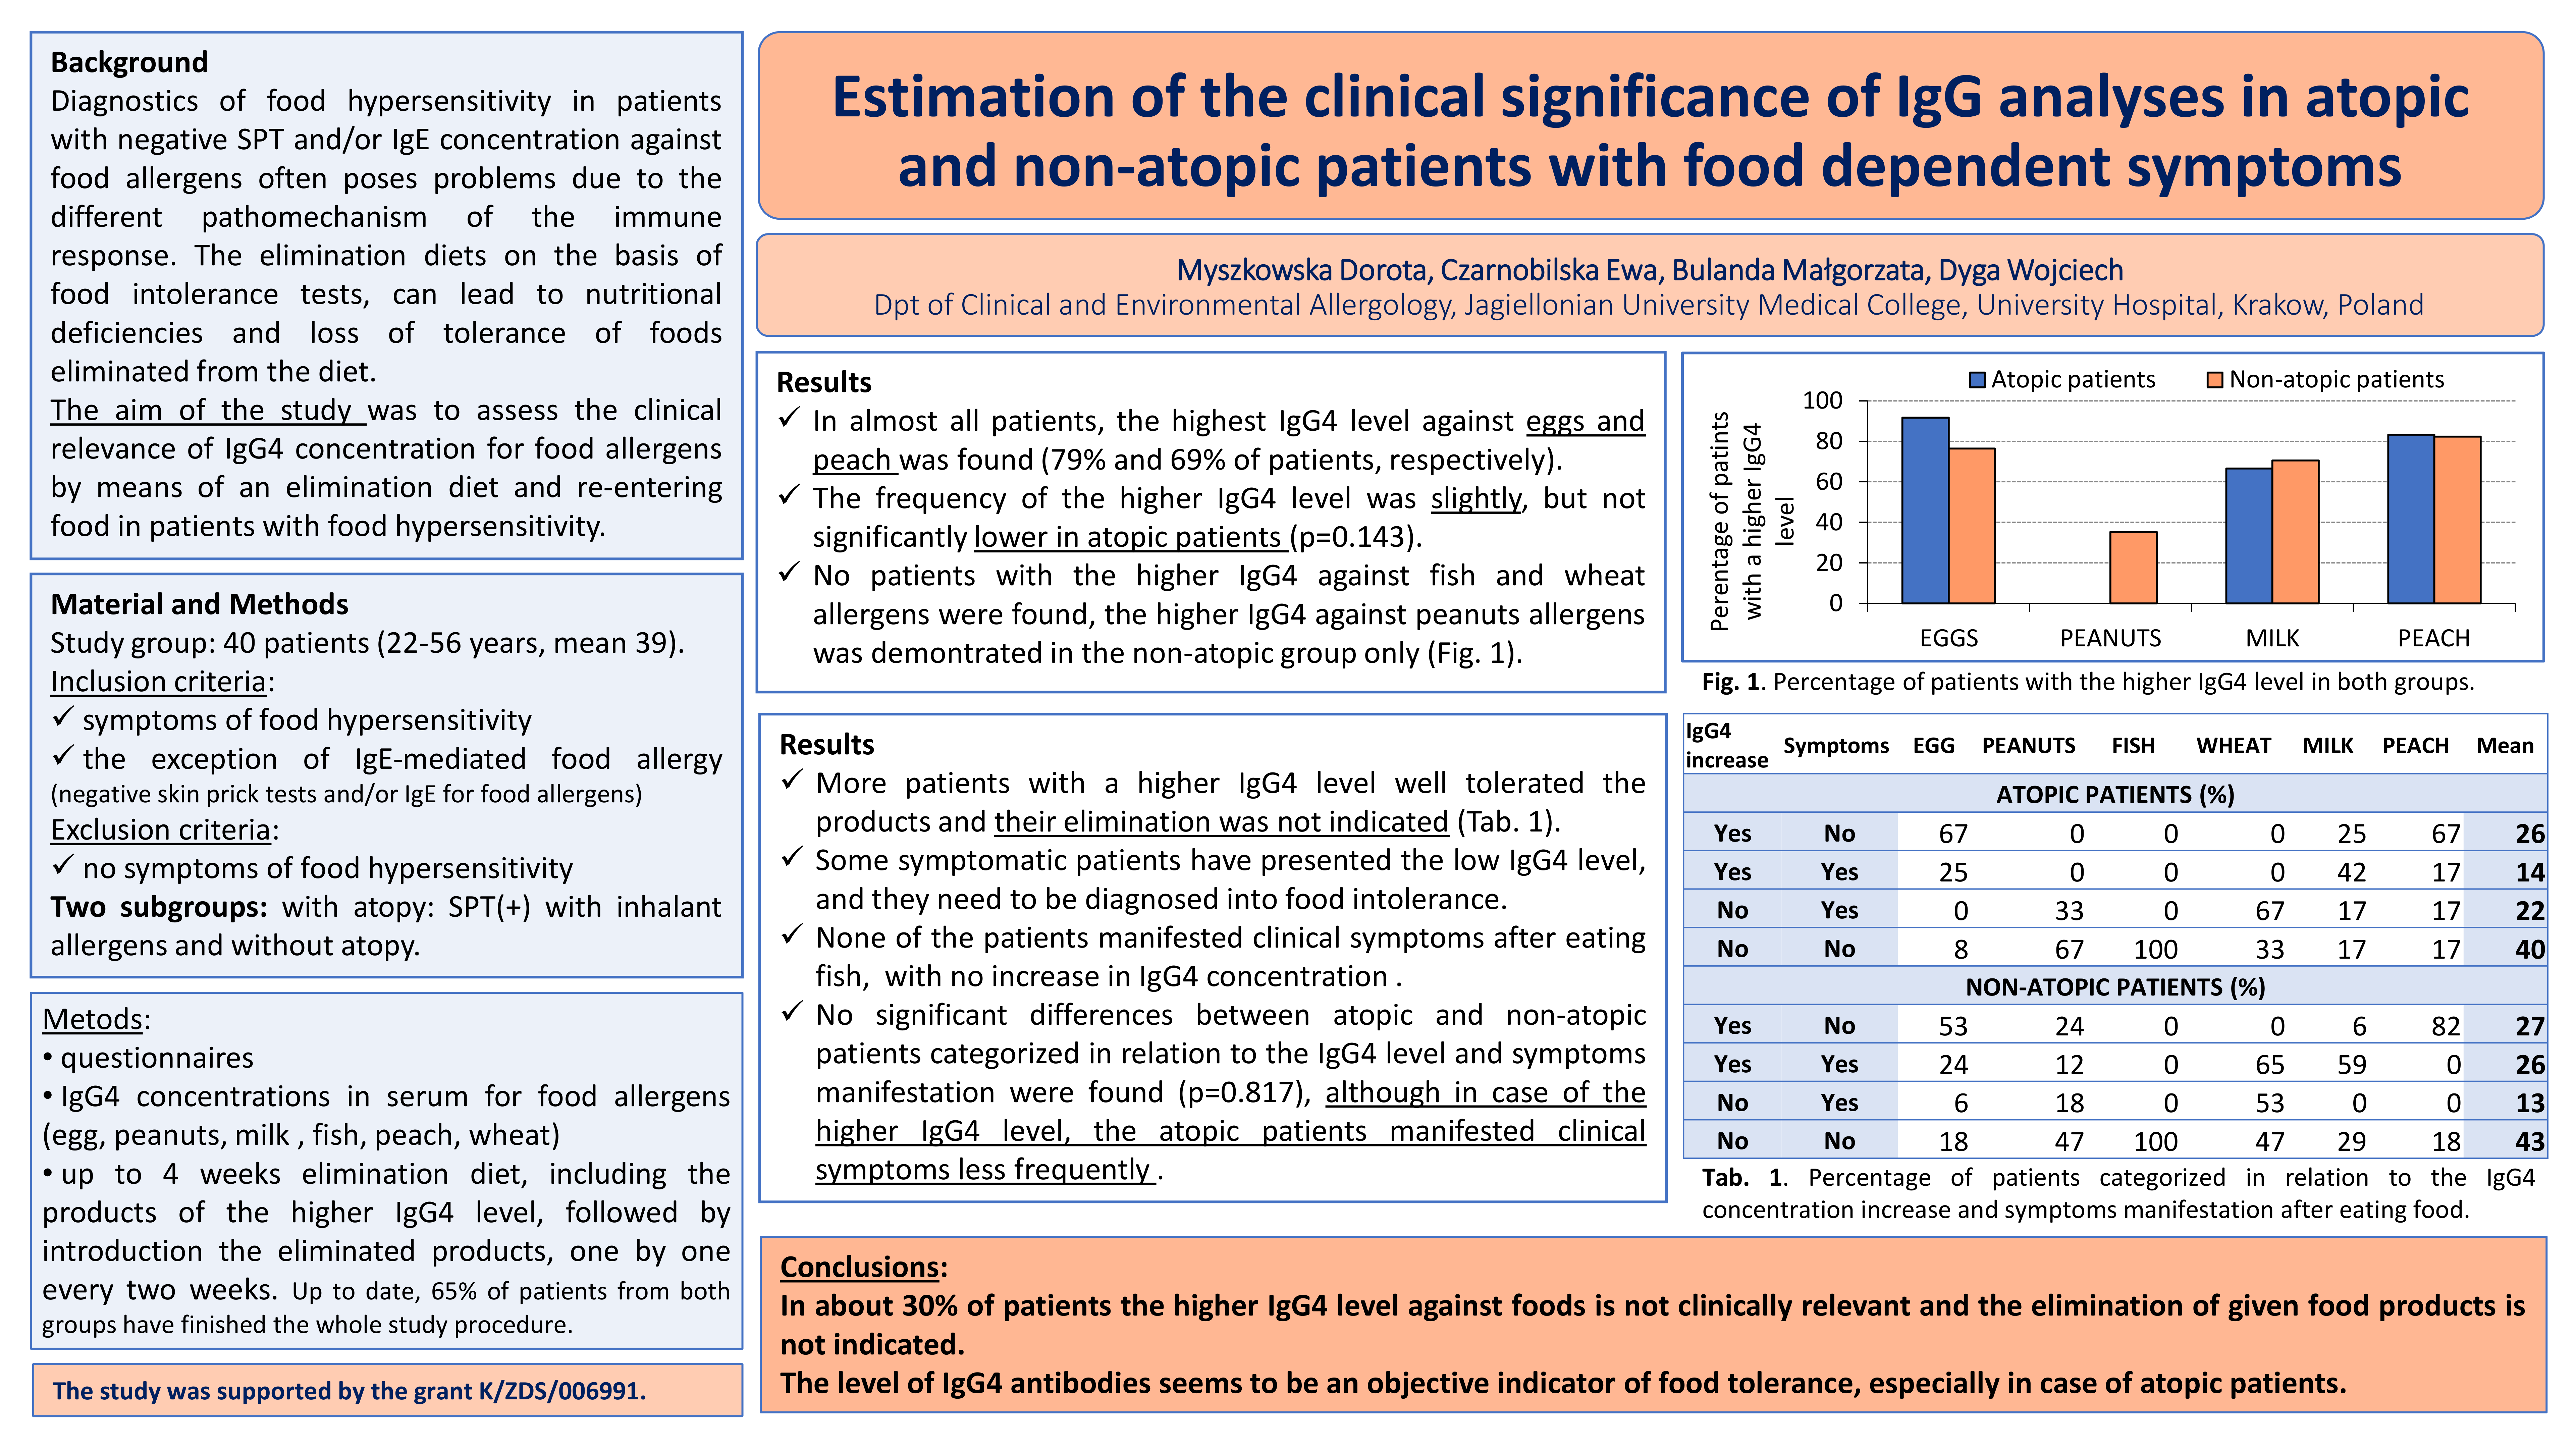 Estimation of the clinical significance of IgG analyses in atopic